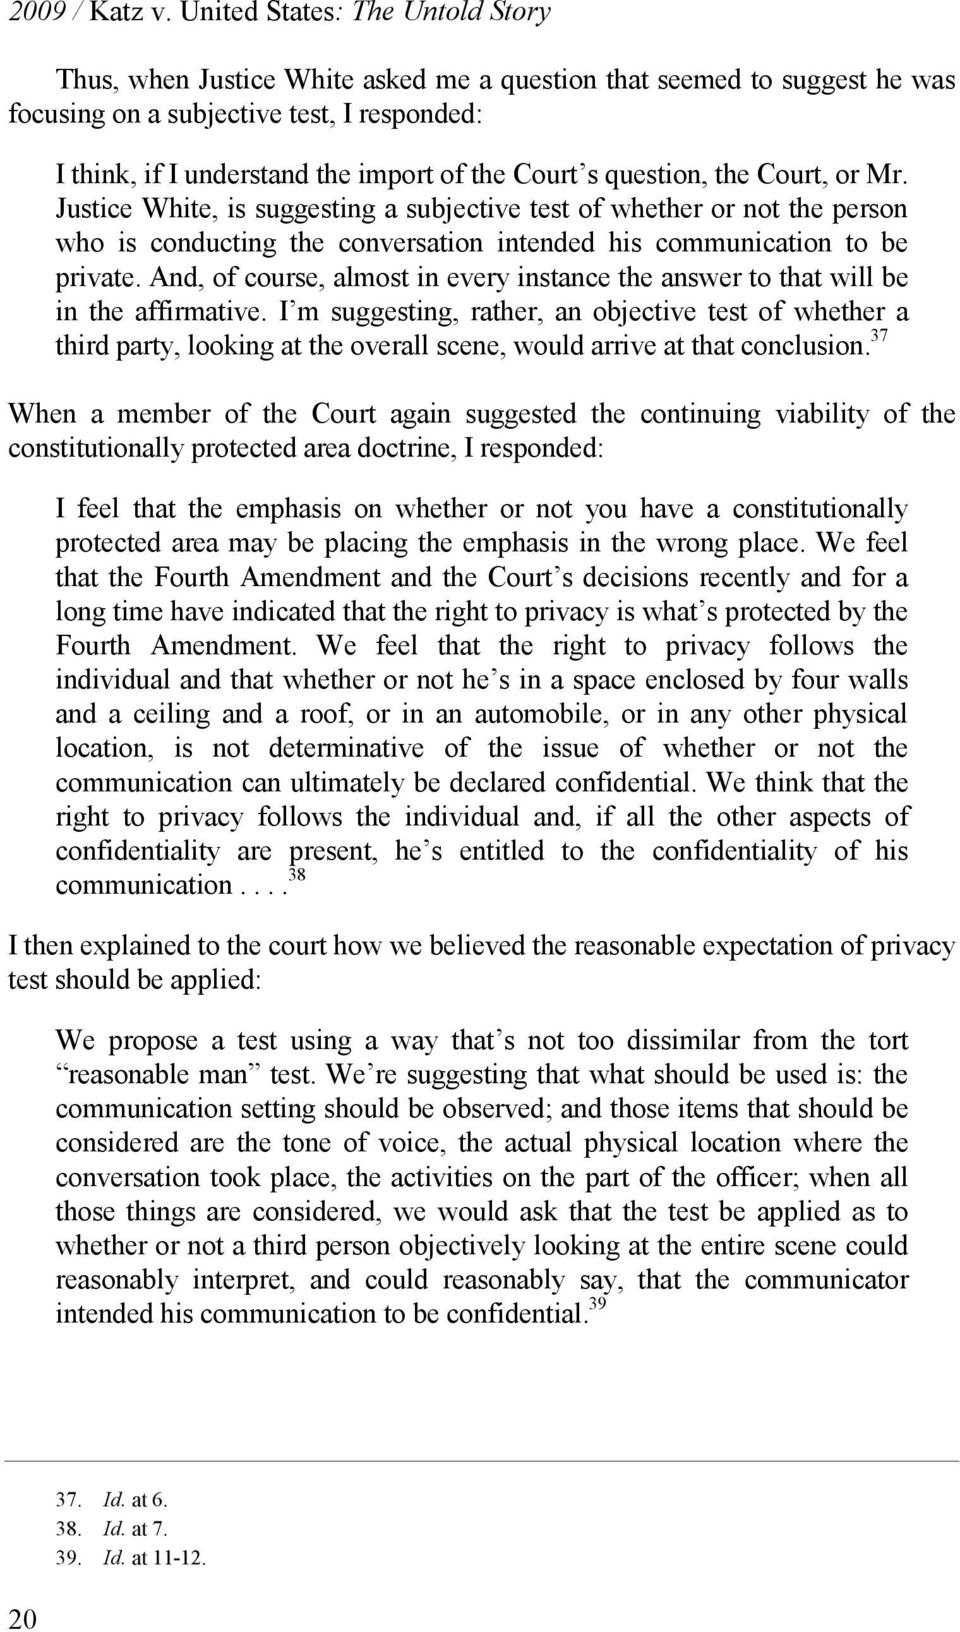 s question, the Court, or Mr. Justice White, is suggesting a subjective test of whether or not the person who is conducting the conversation intended his communication to be private.